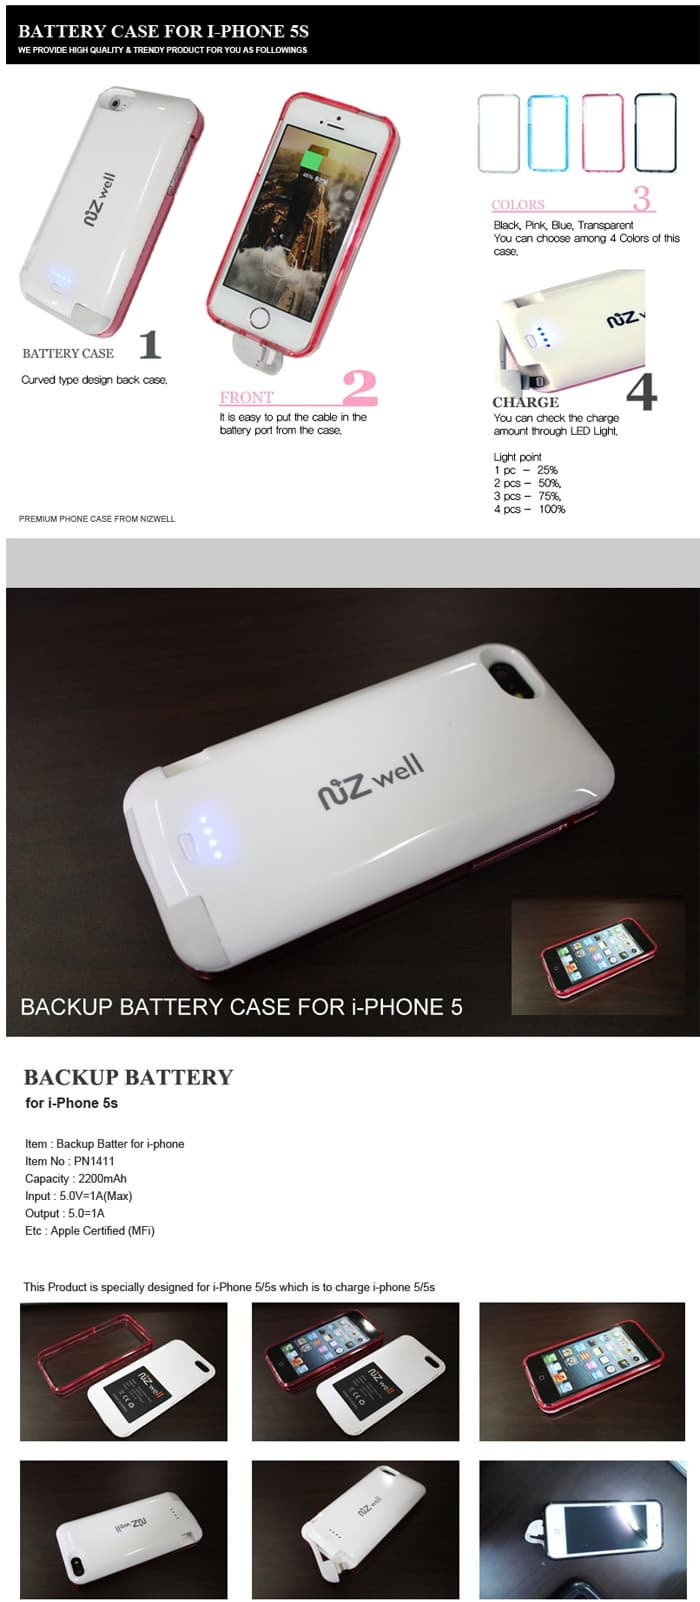 Backup Battery for iPhone 5S